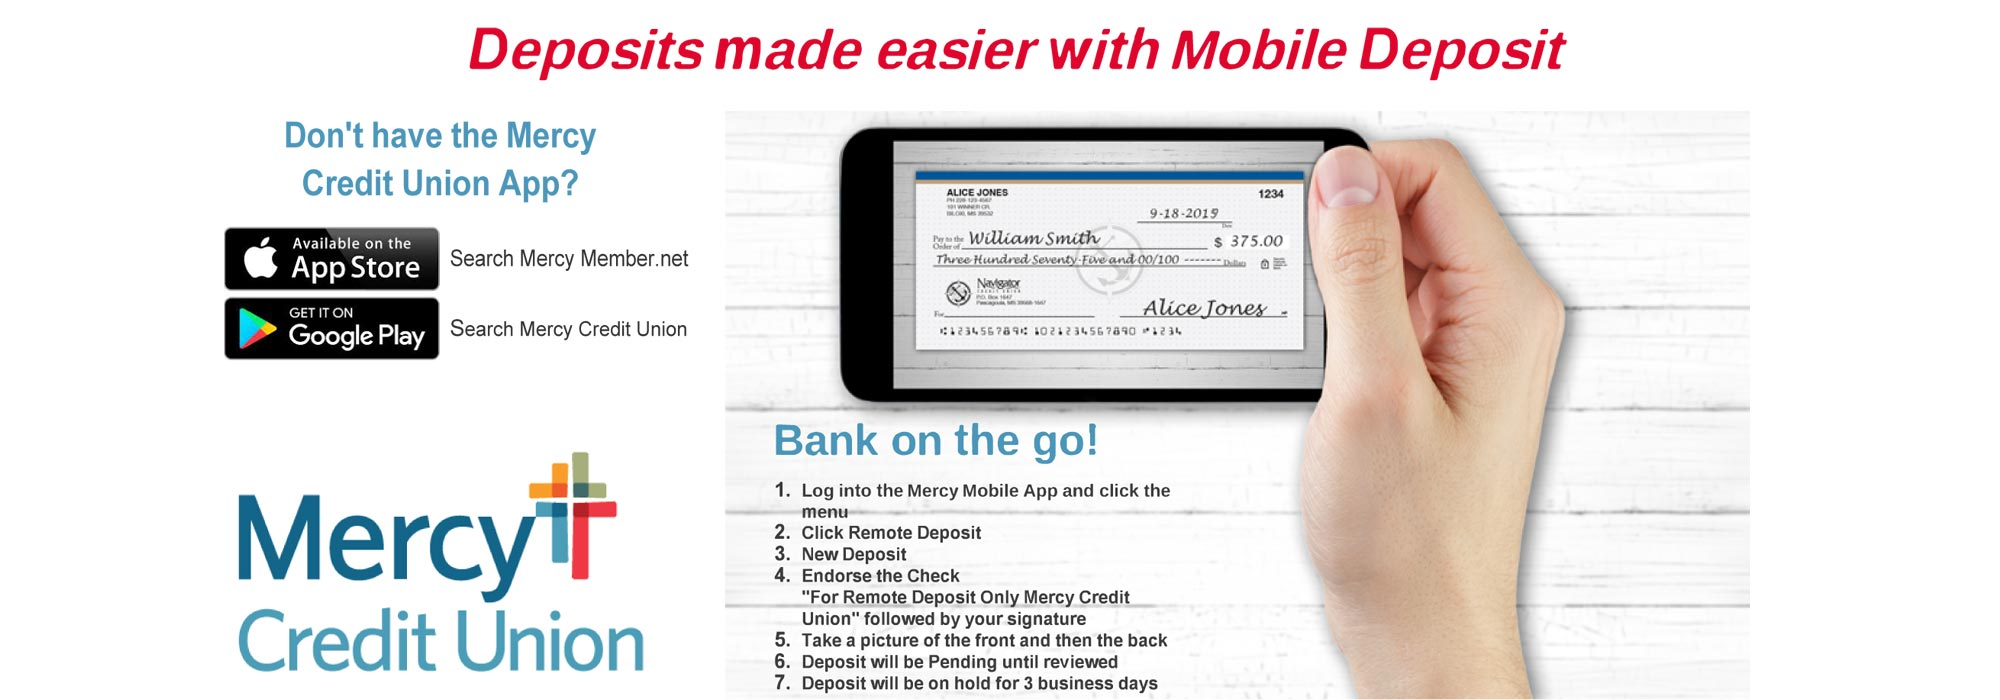 deposits made easier with mobile deposit